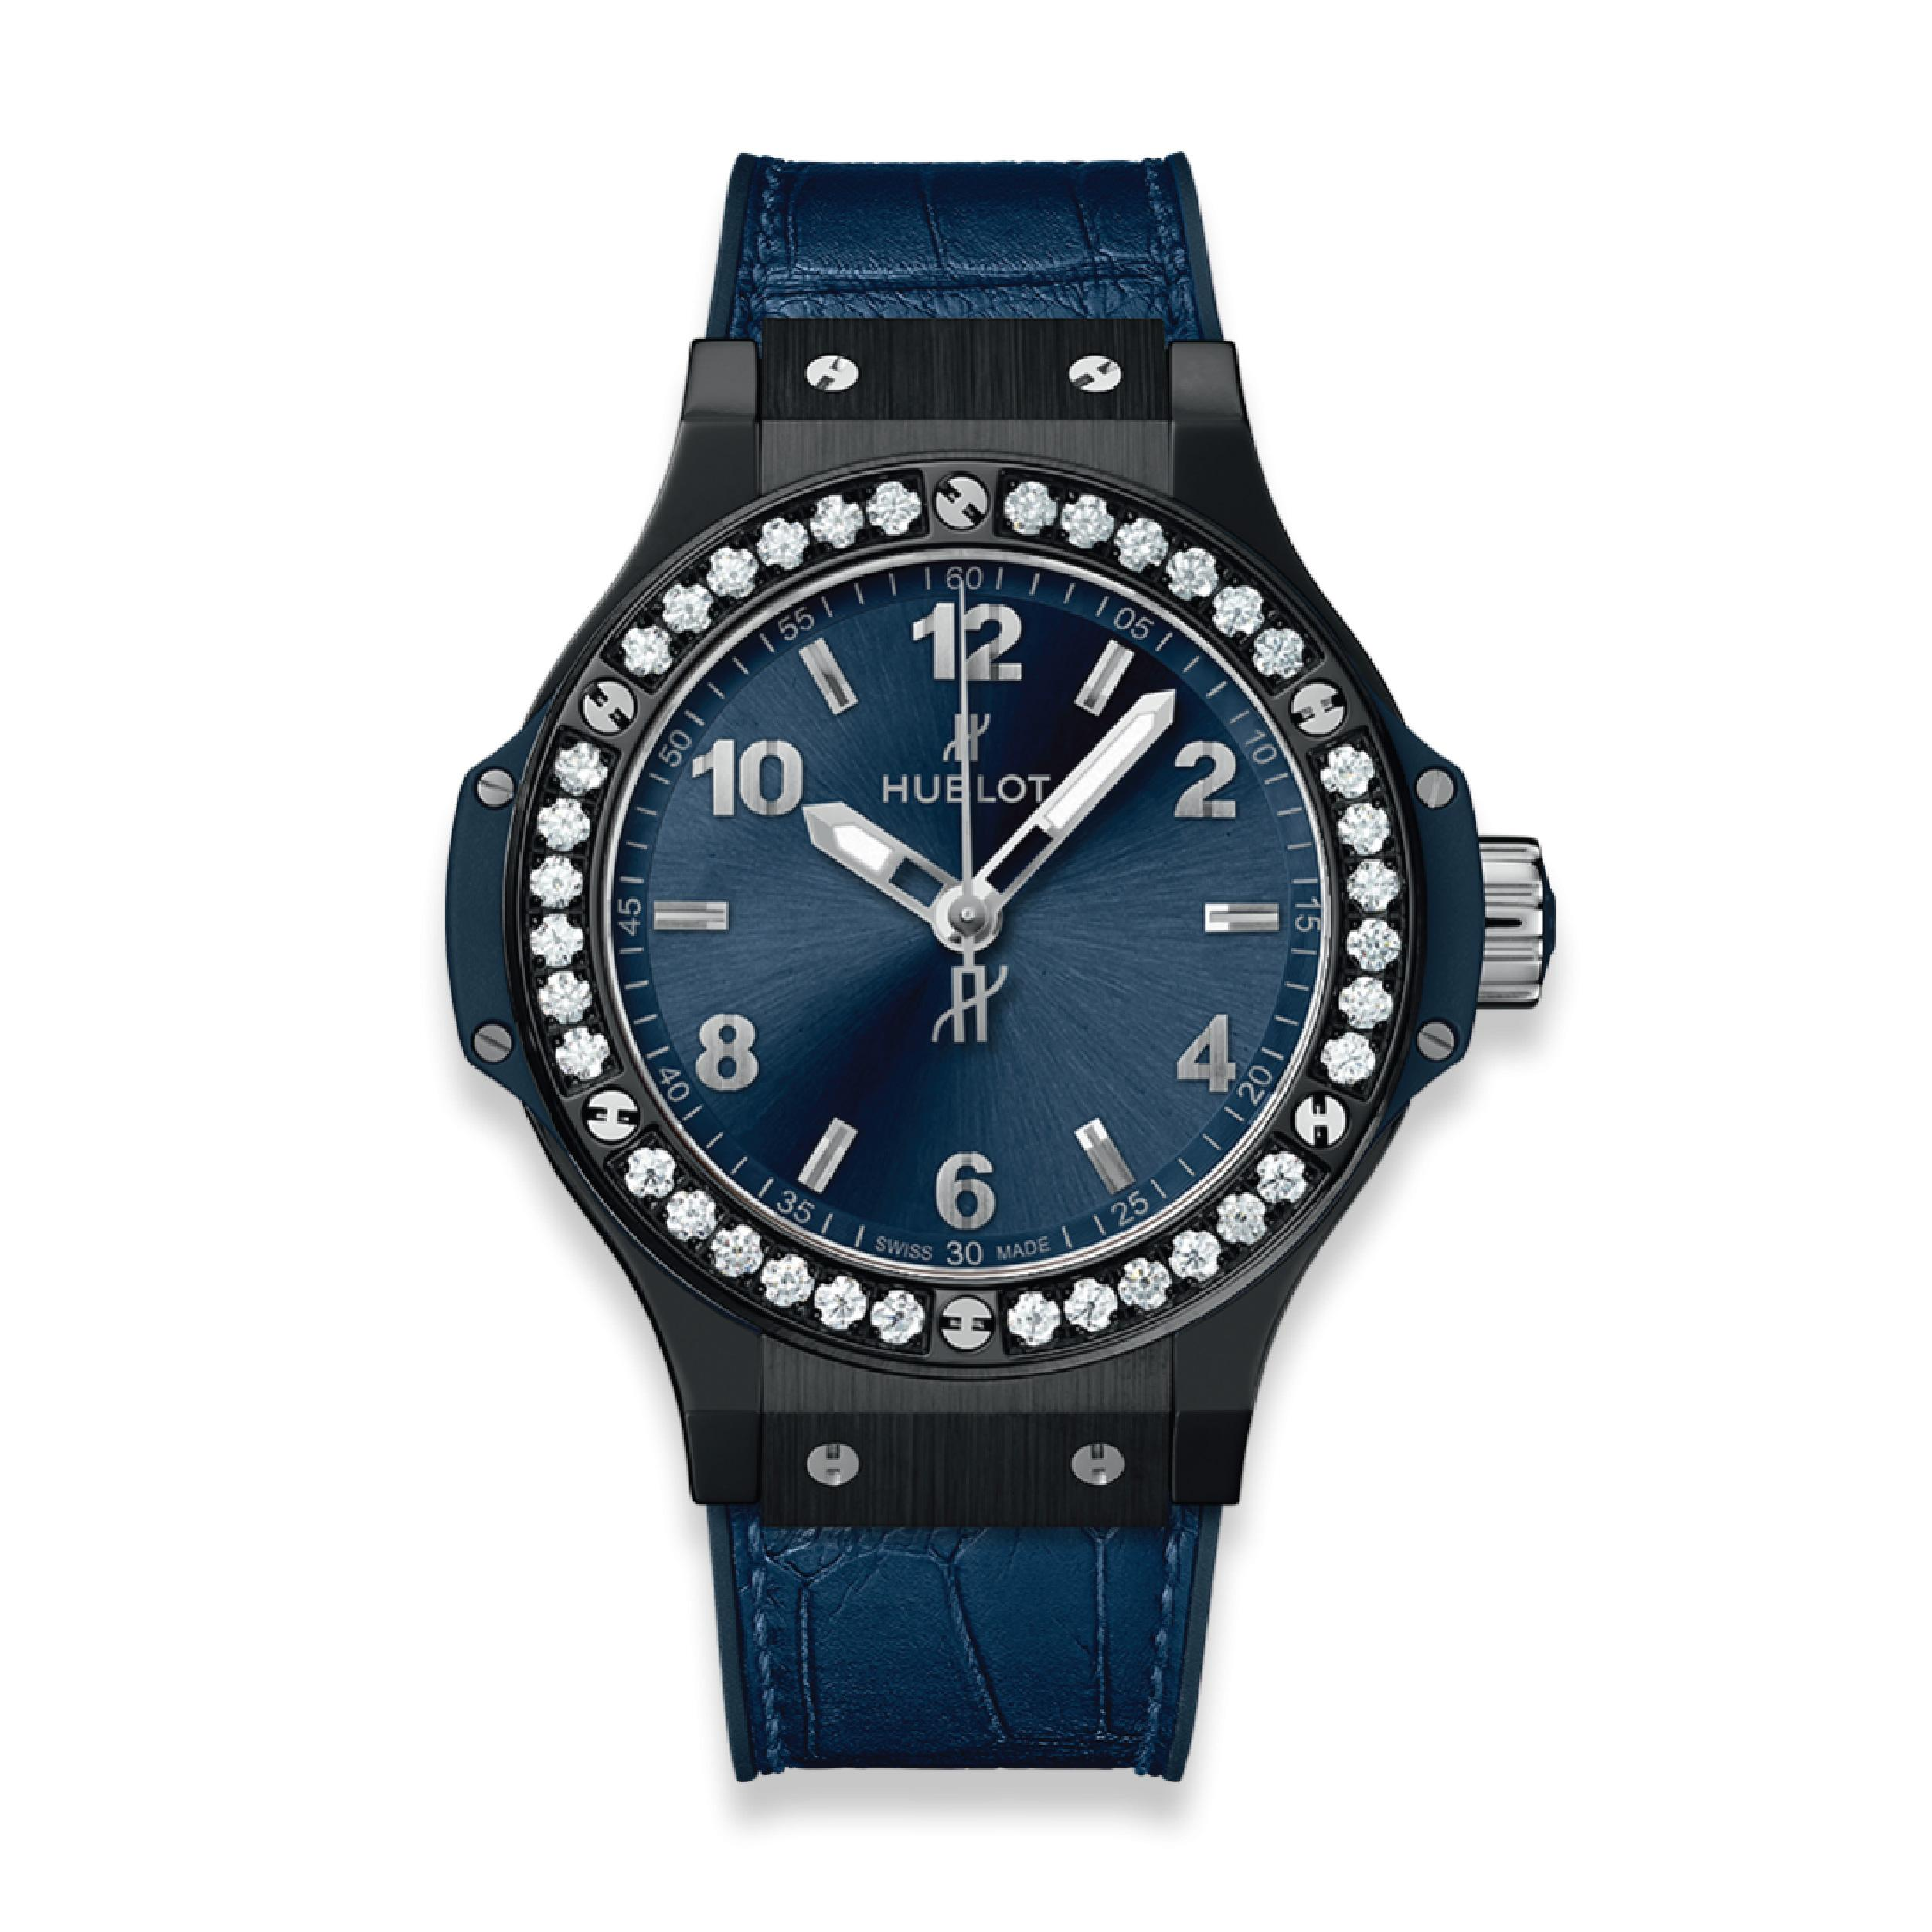 HUBLOT ЧАСЫ BIG BANG CERAMIC BLUE DIAMONDS 38 mm